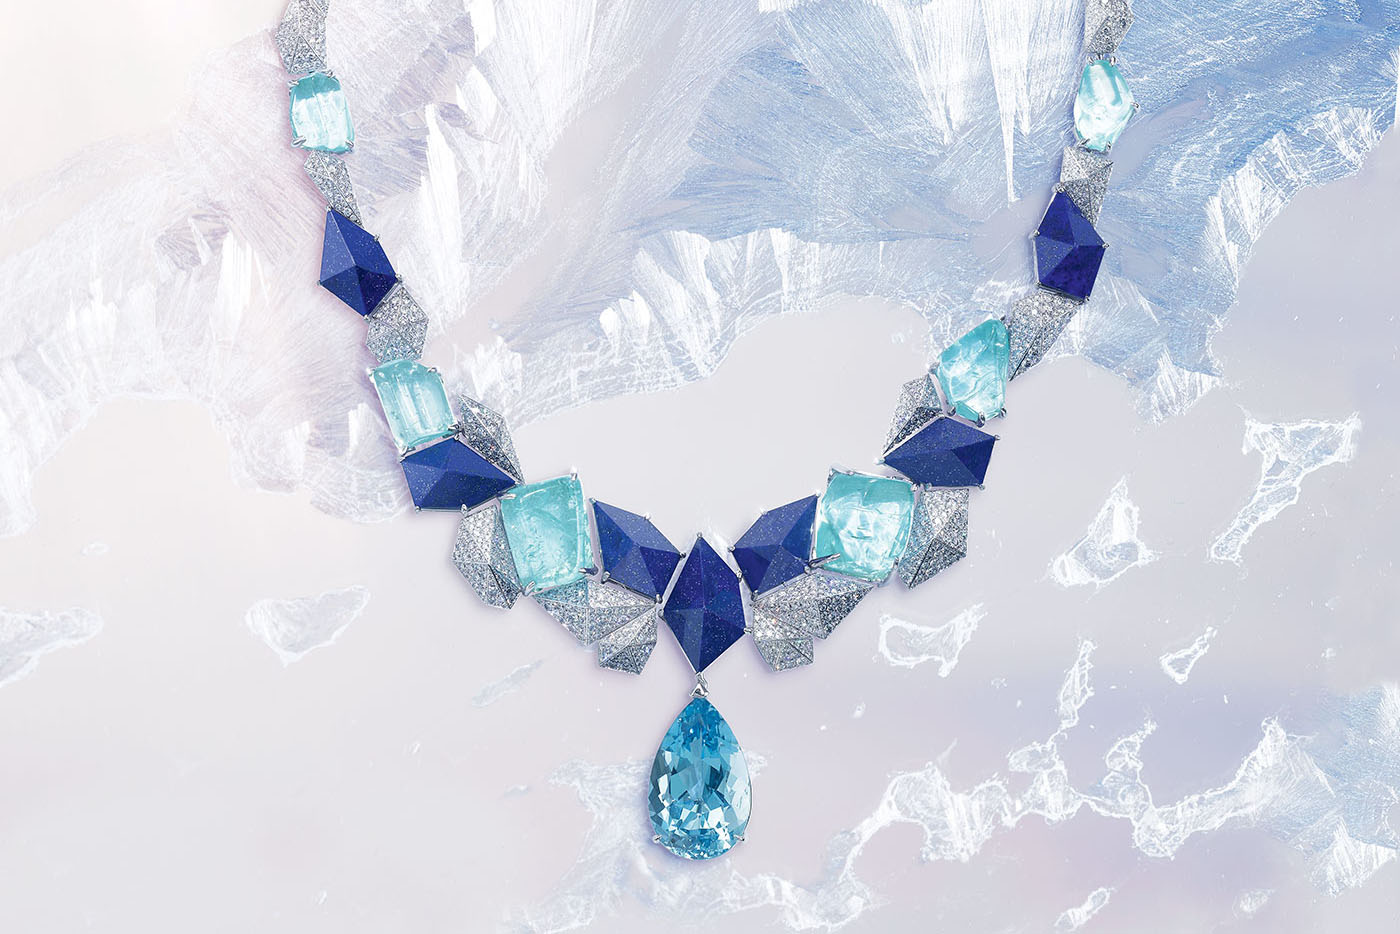 "Колье Infinite Blue из коллекции Piaget 'Sunlight Escape' с грушевидным аквамарином 14.52ct, турмалинами ""Параиба"" 67.34ct, лазуритом и бриллиантами"